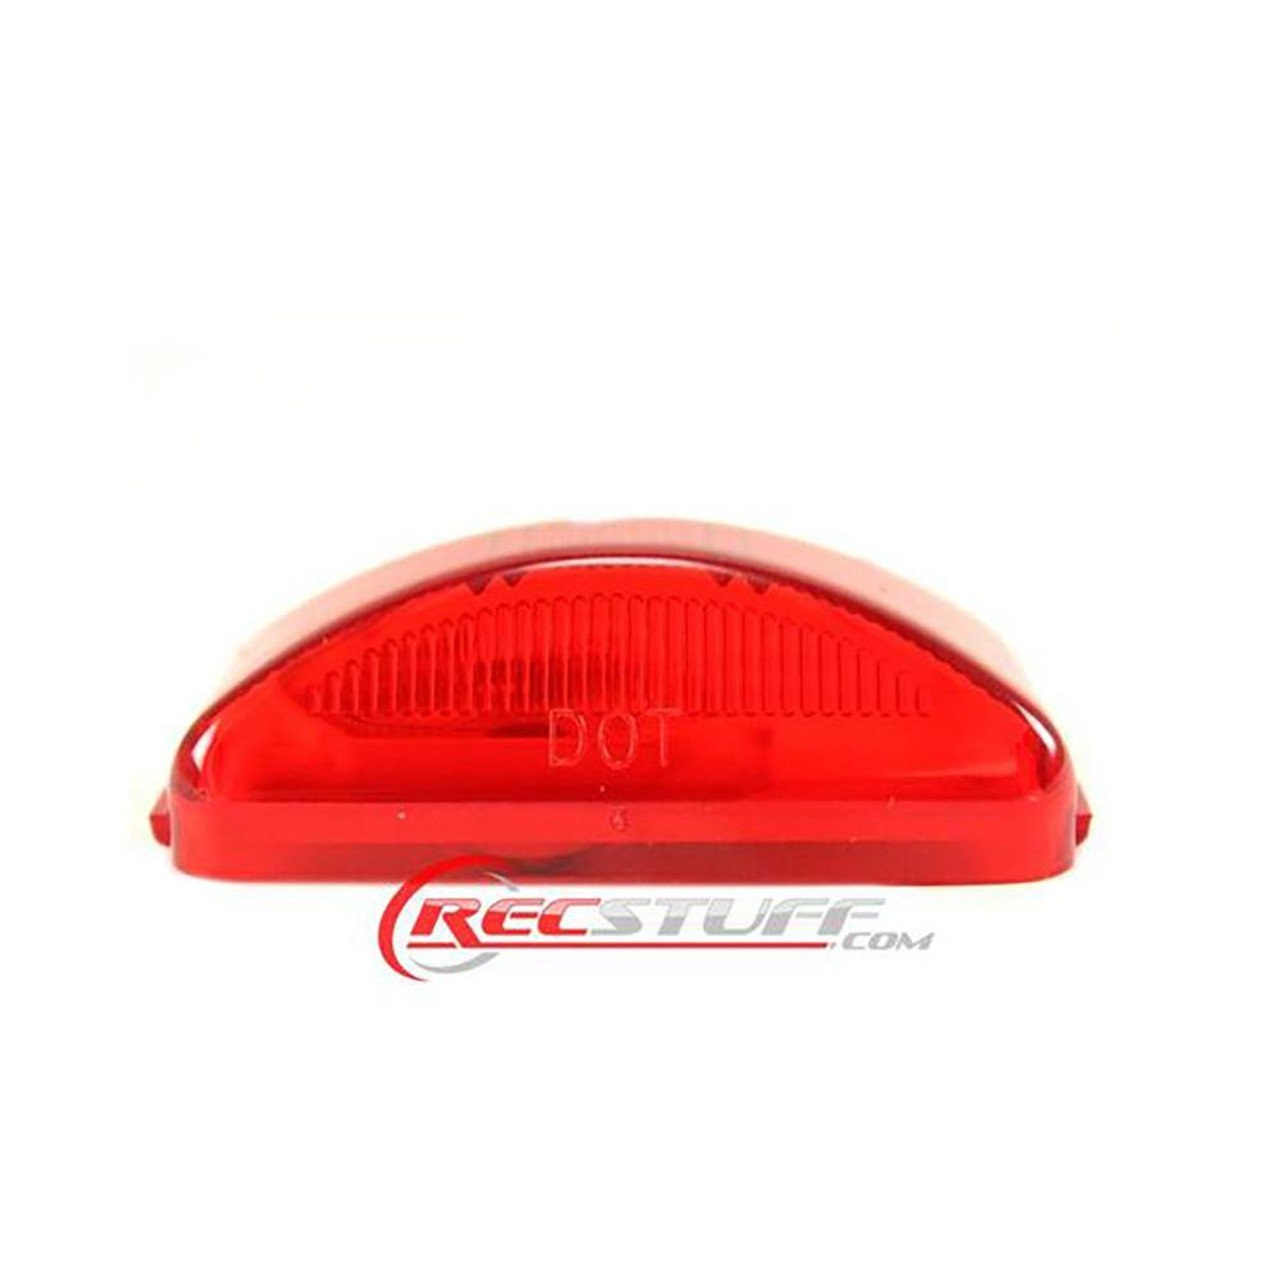 Red Clearance Light - Snap Lock